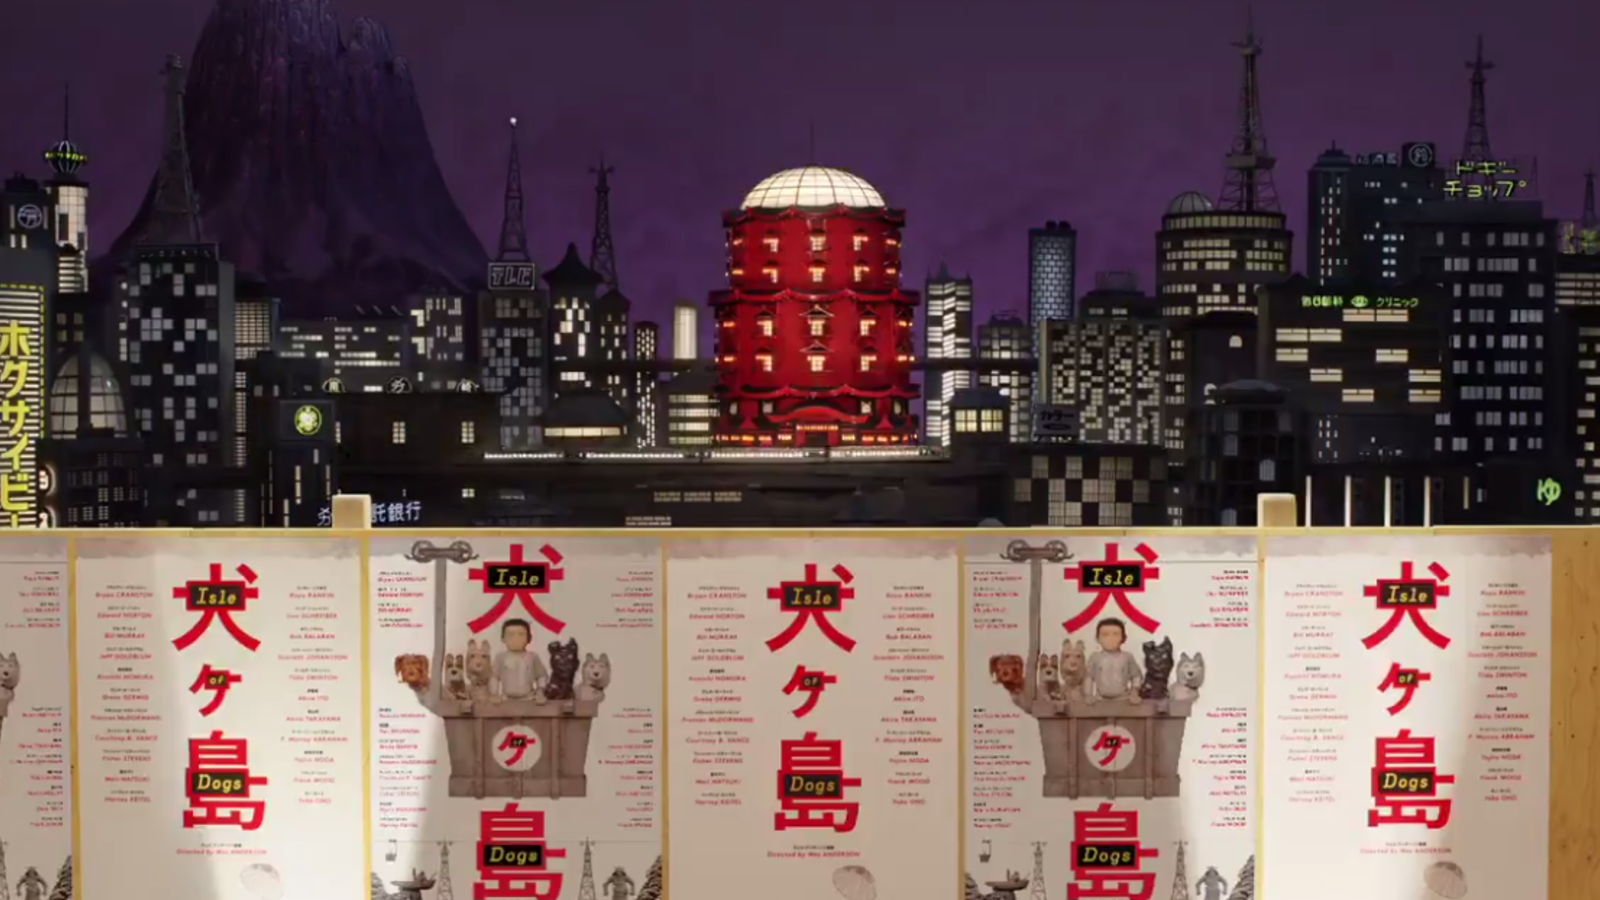 8l257pr Wes Anderson Wallpaper Px Isle Of Dogs Wes